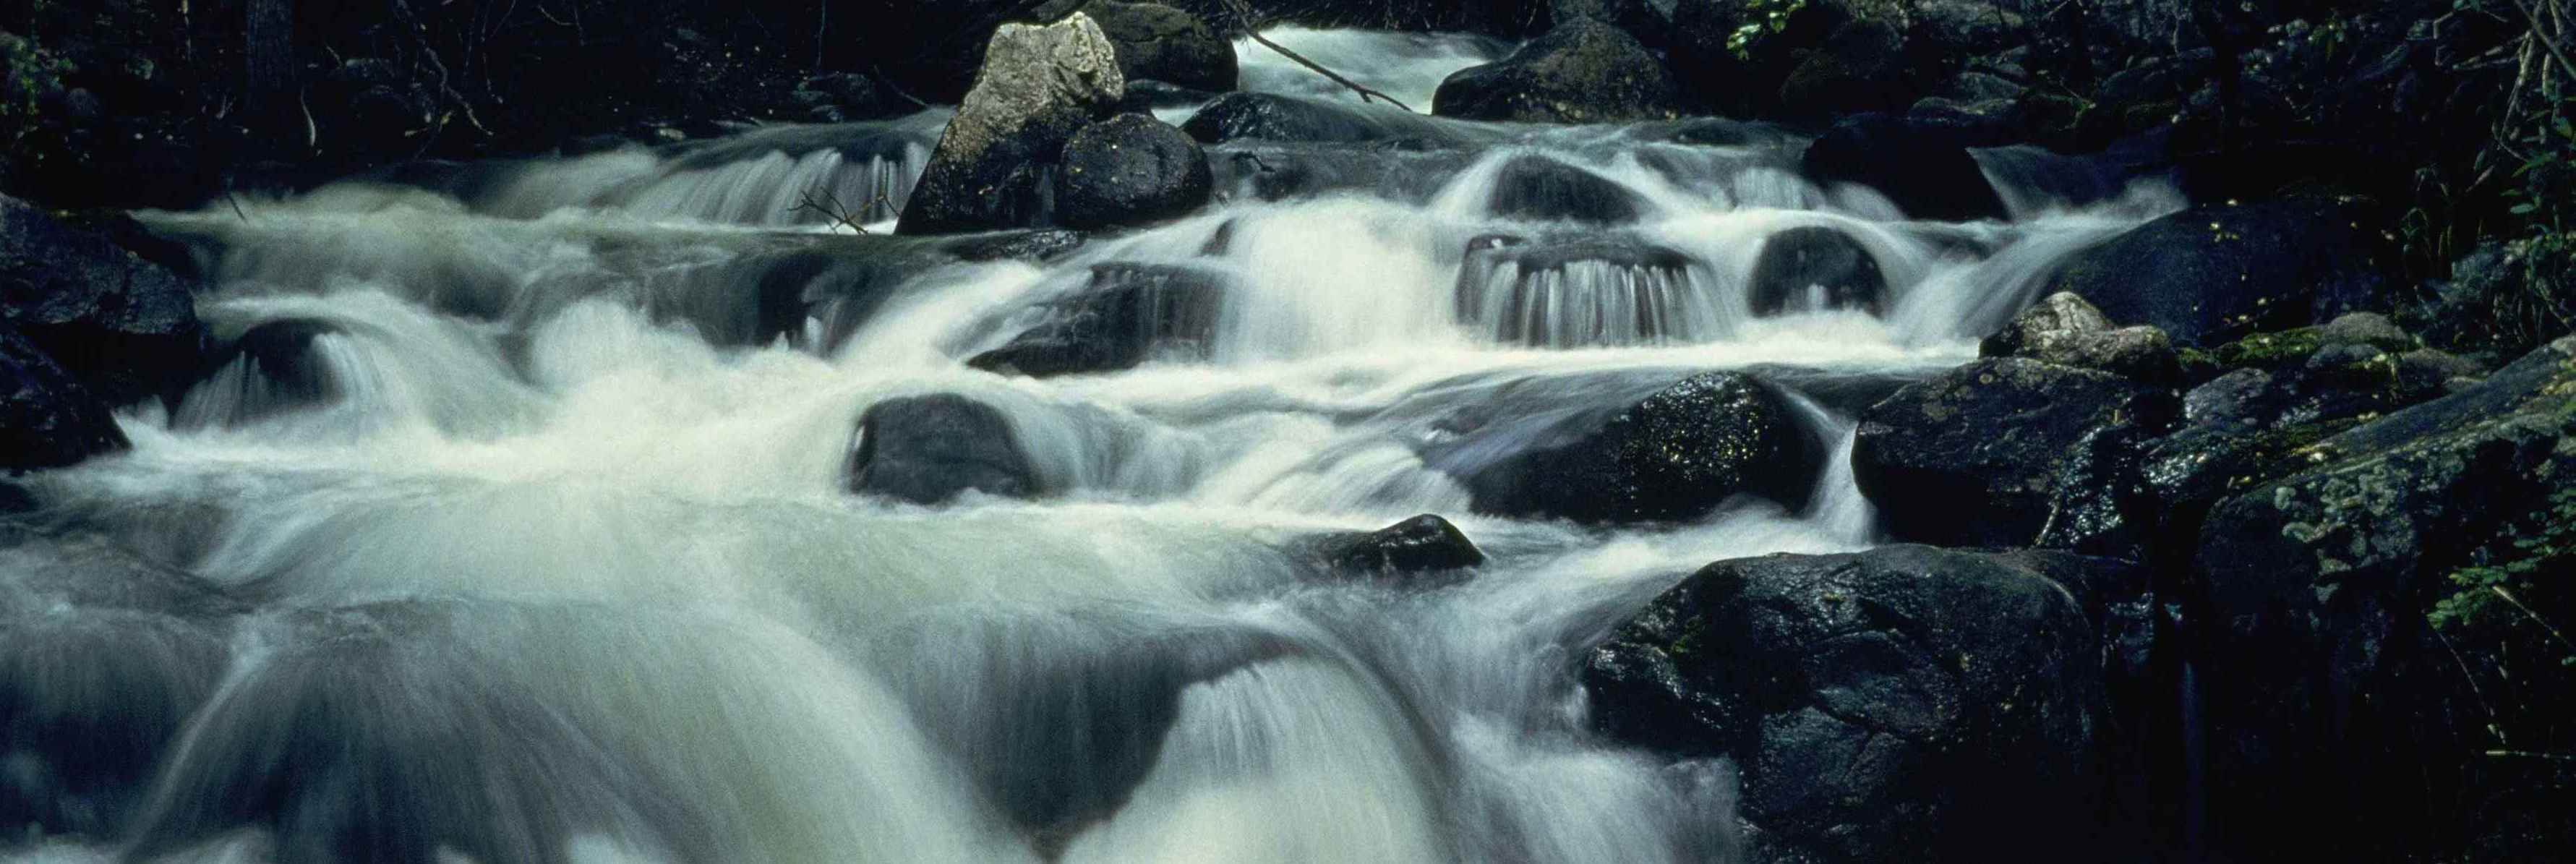 Fast mountain river makes a hazy waterfall / Public Domain